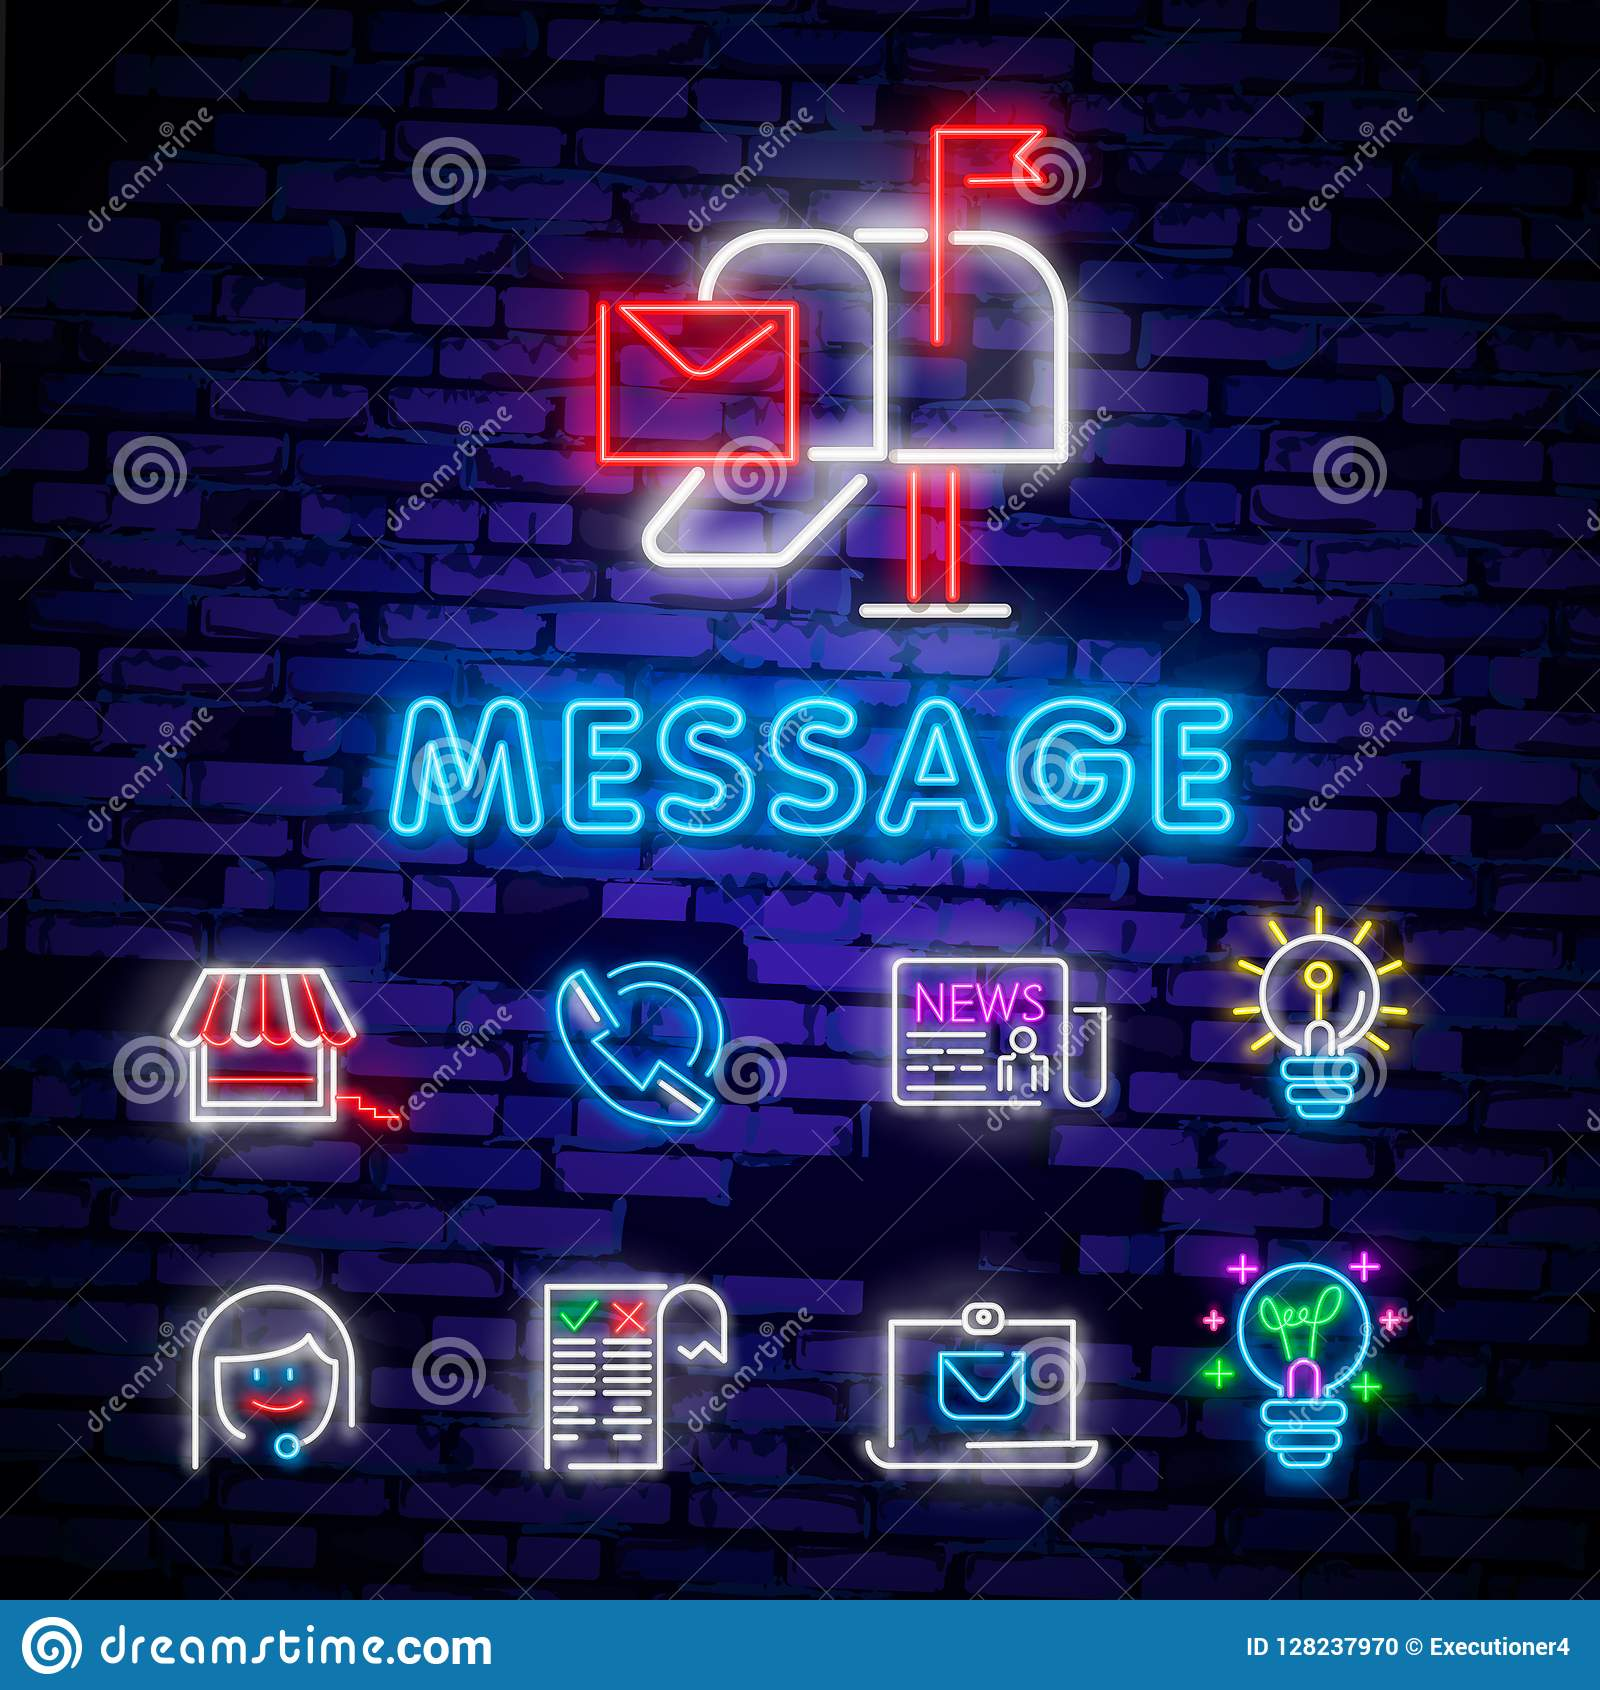 Neon Light  Mail Delivery Icon  Envelope Symbol  Message